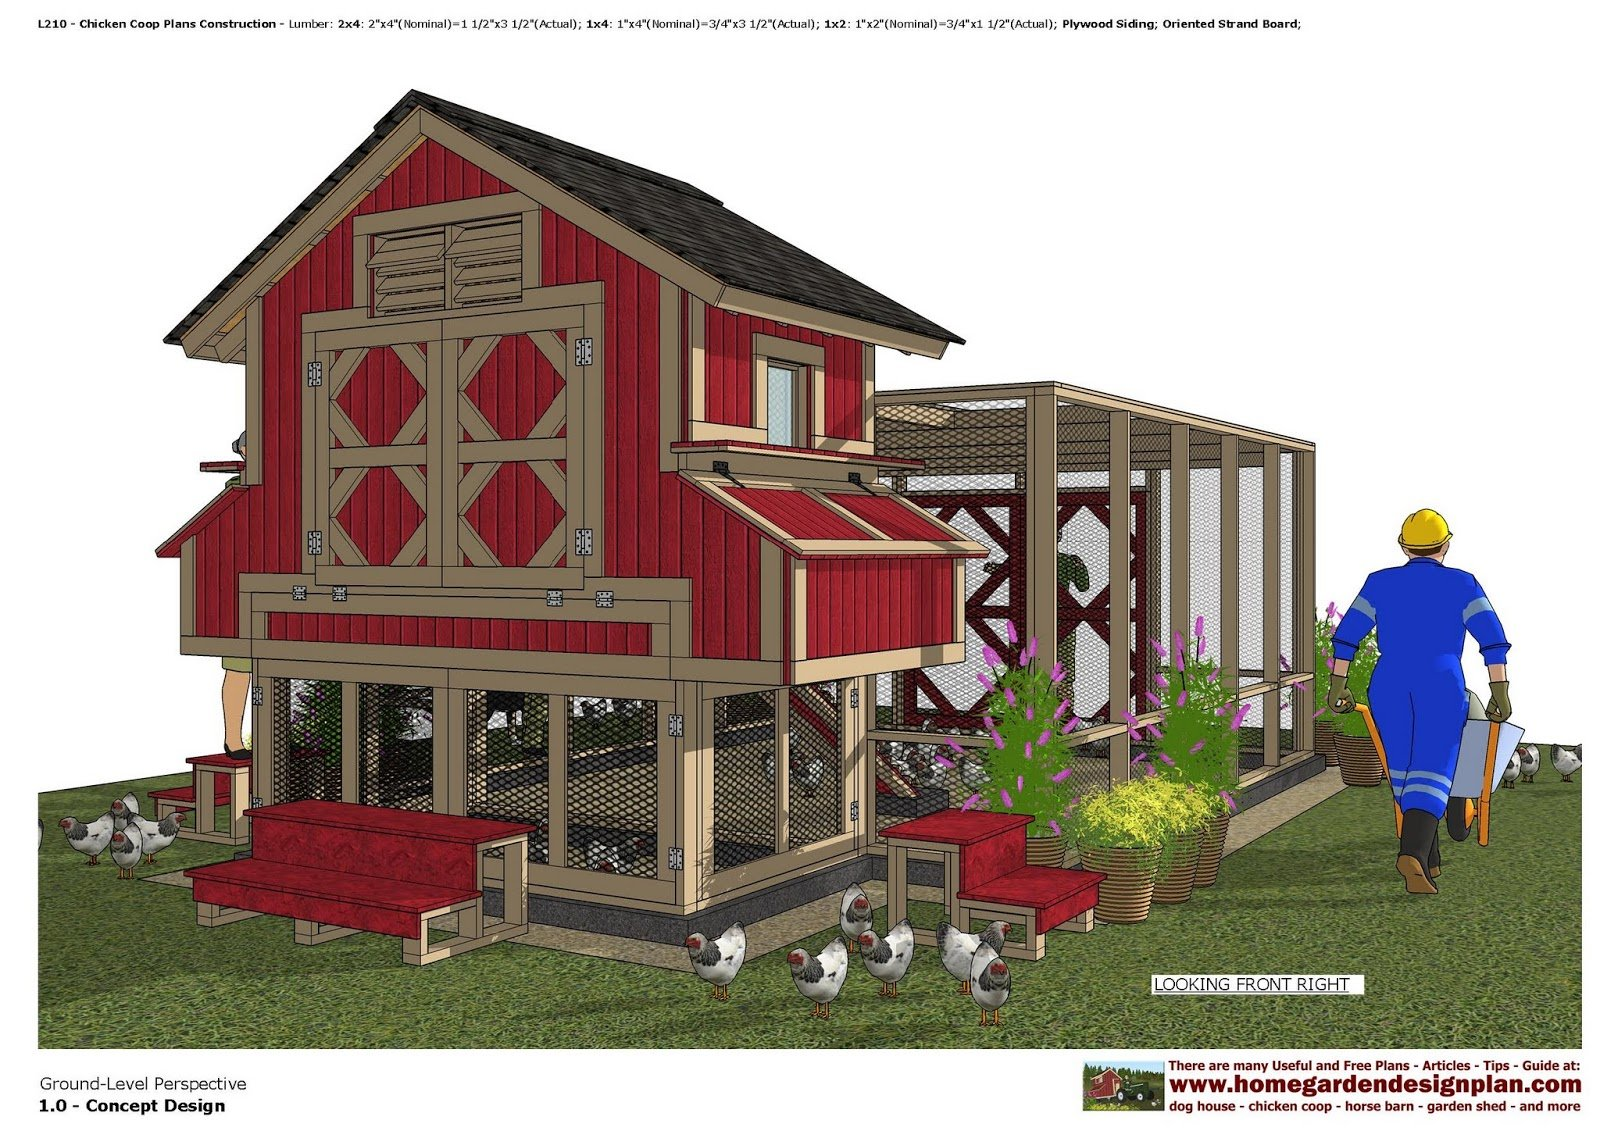 9 diy chicken coop plans for medium to large flocks Home get design